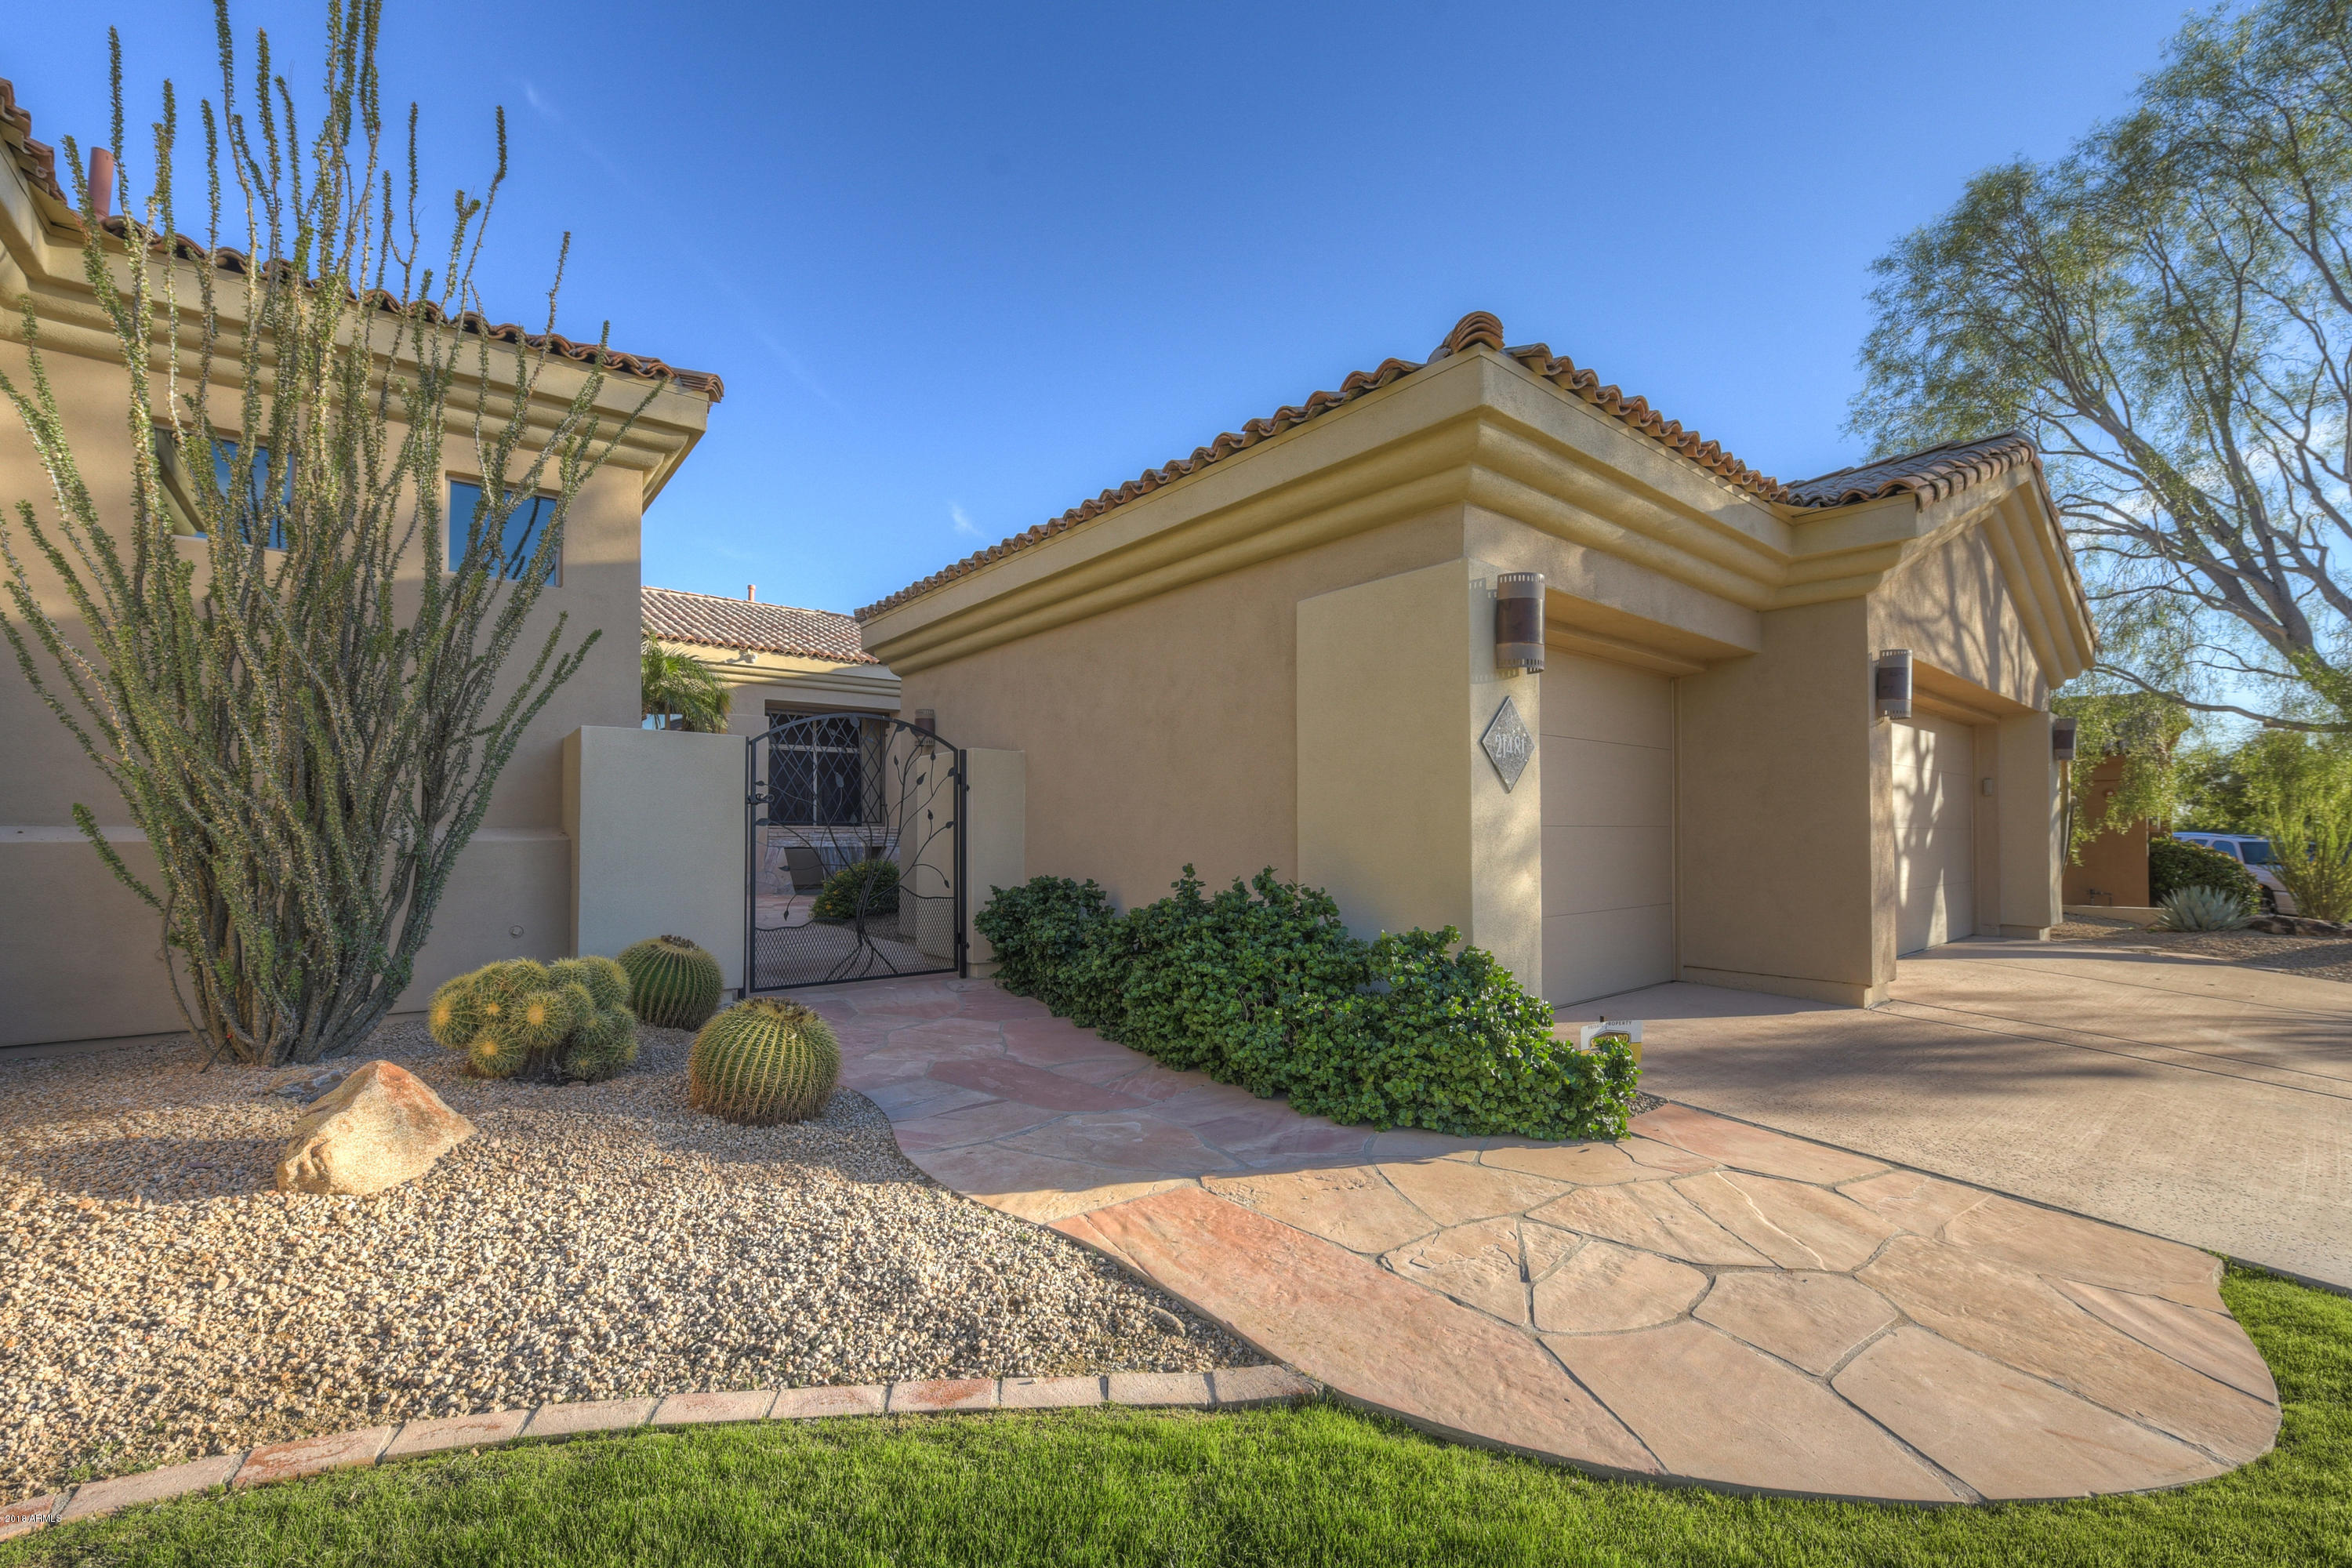 21481 N 78TH Street Scottsdale, AZ 85255 - MLS #: 5852051